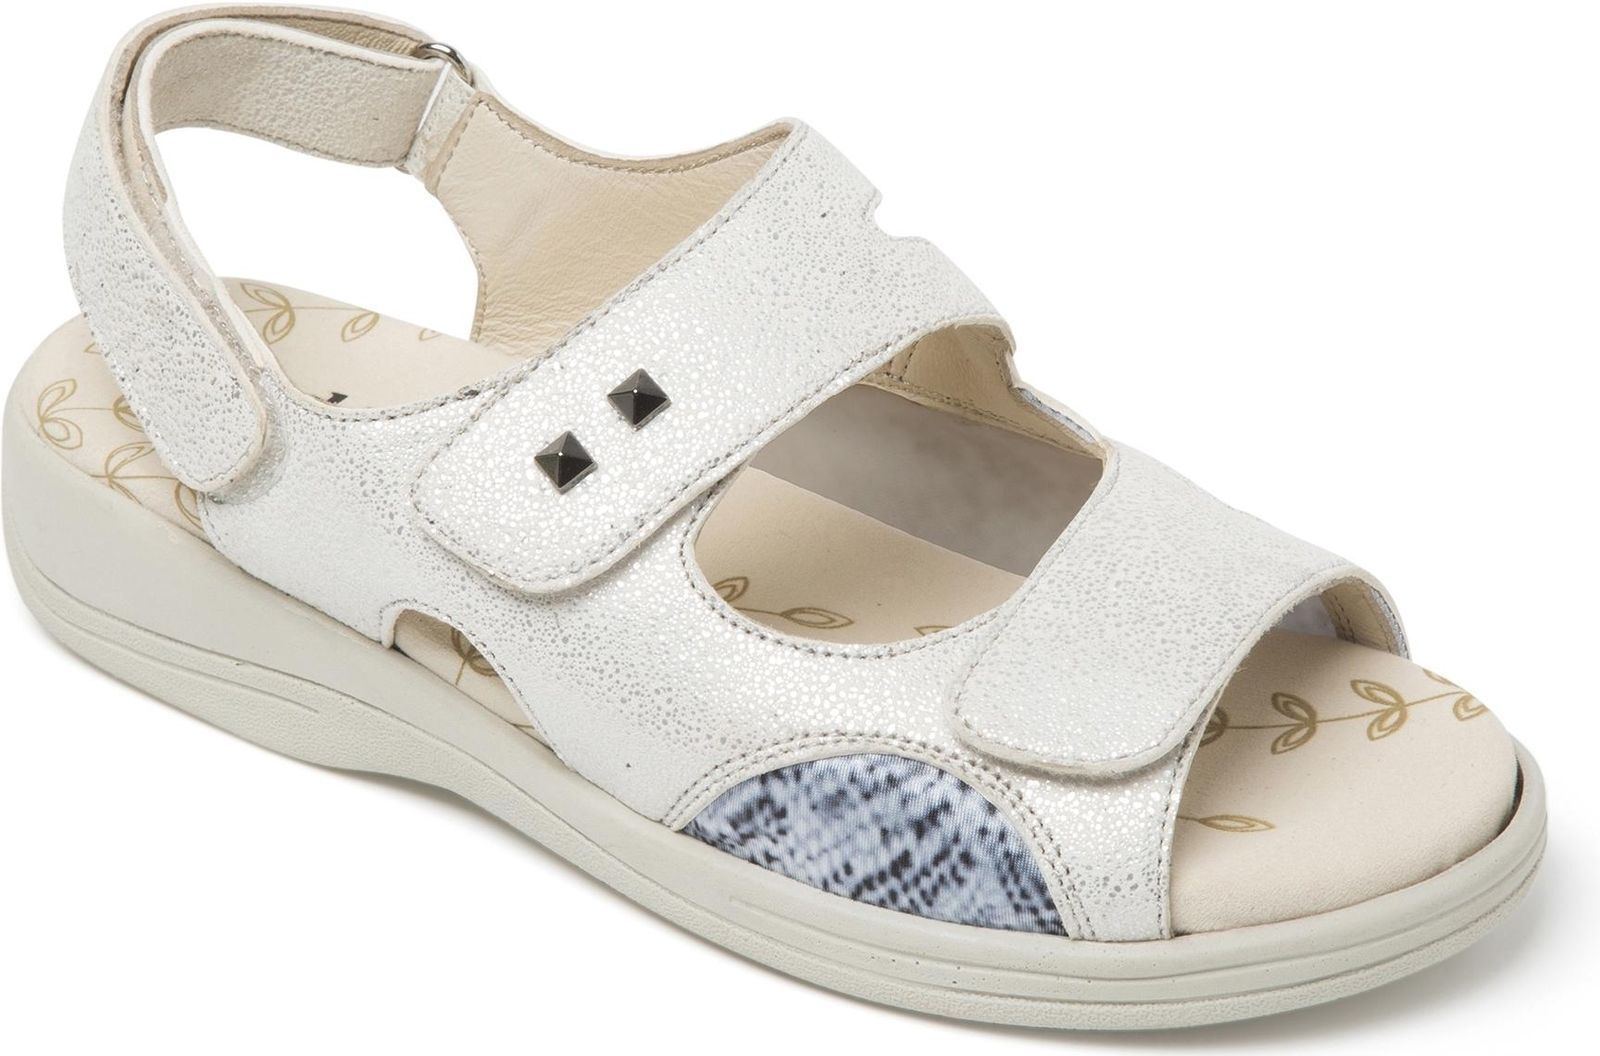 Padders Ladies Leather Extra Wide 3E 4E Fasteners Sandals White GEMSTONE